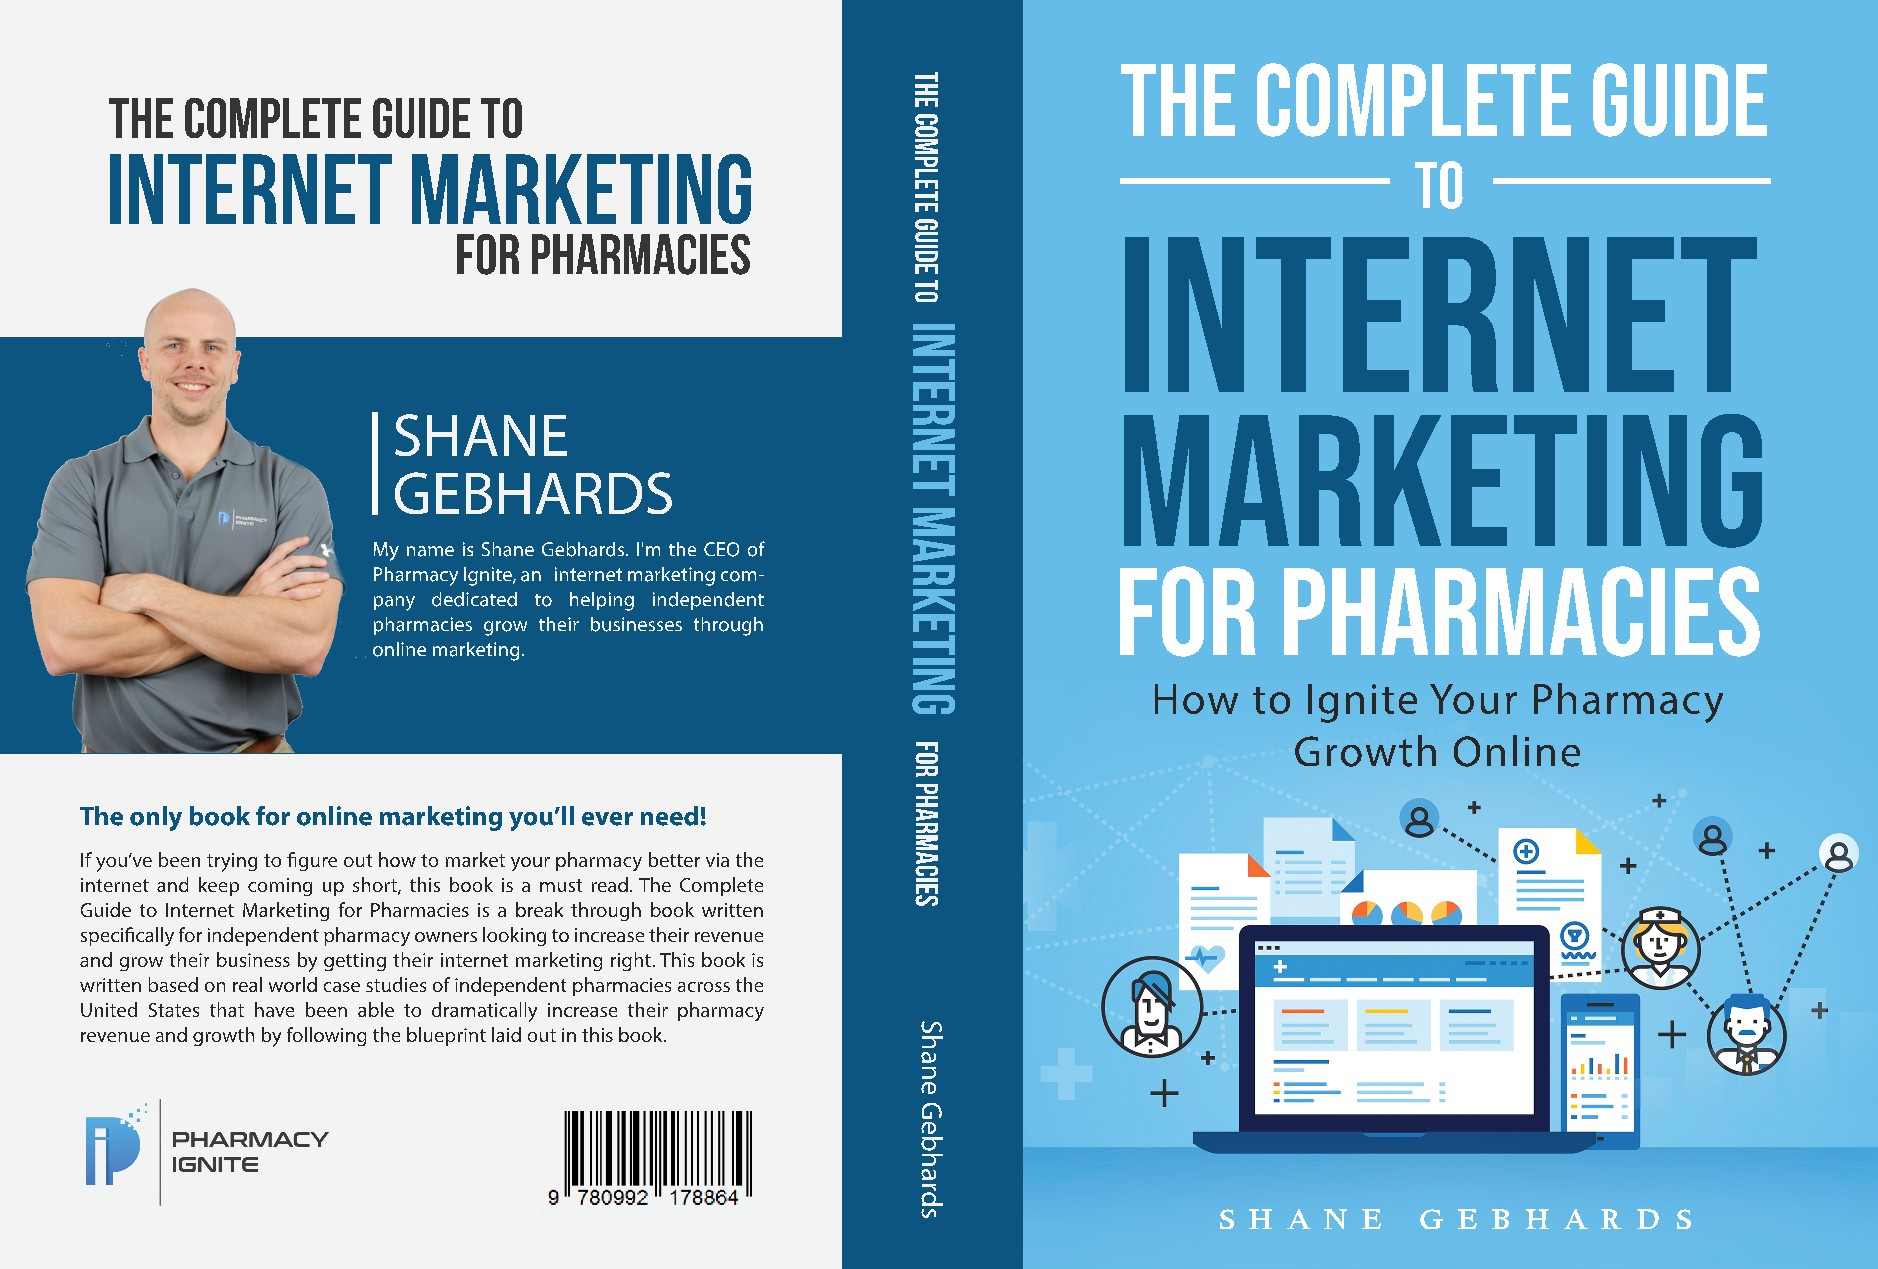 Pharmacy Digital Marketing Agency Needs a killer book cover design!